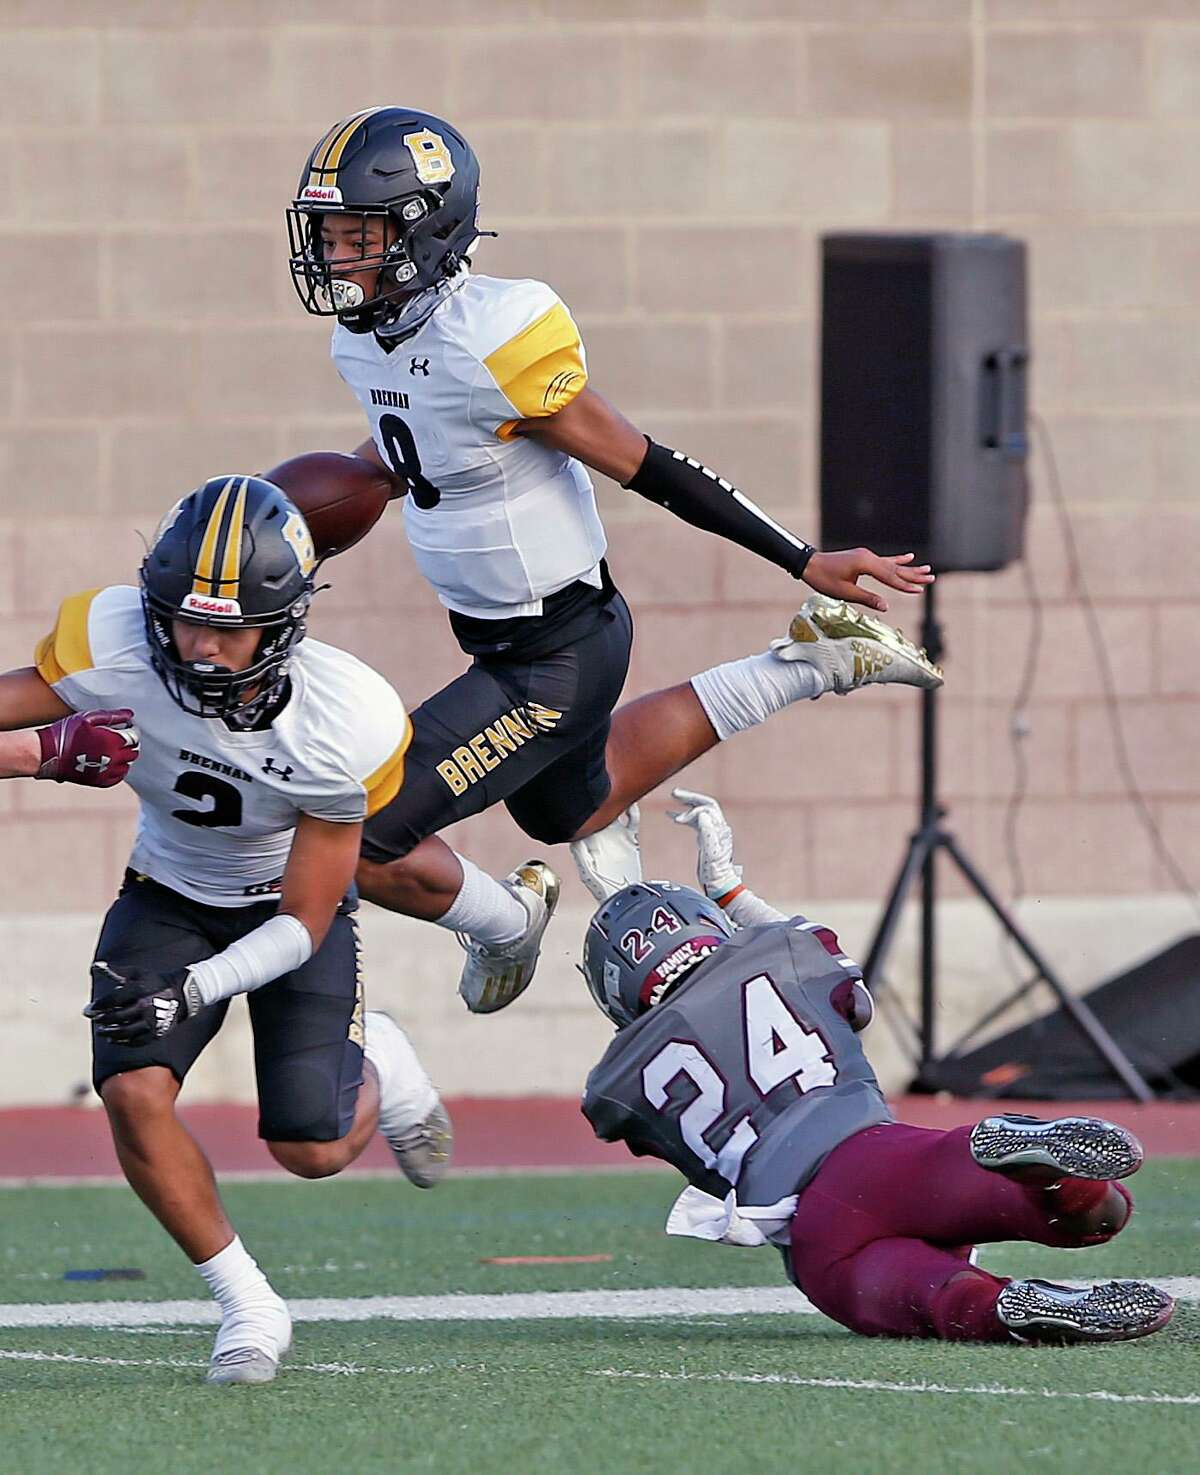 Brennan QB Ashton Dubose leaps over Marshall DB Kimarion Todd. Brennan vs Marshall on Saturday, Nov. 21, 2020 at Farris Stadium.